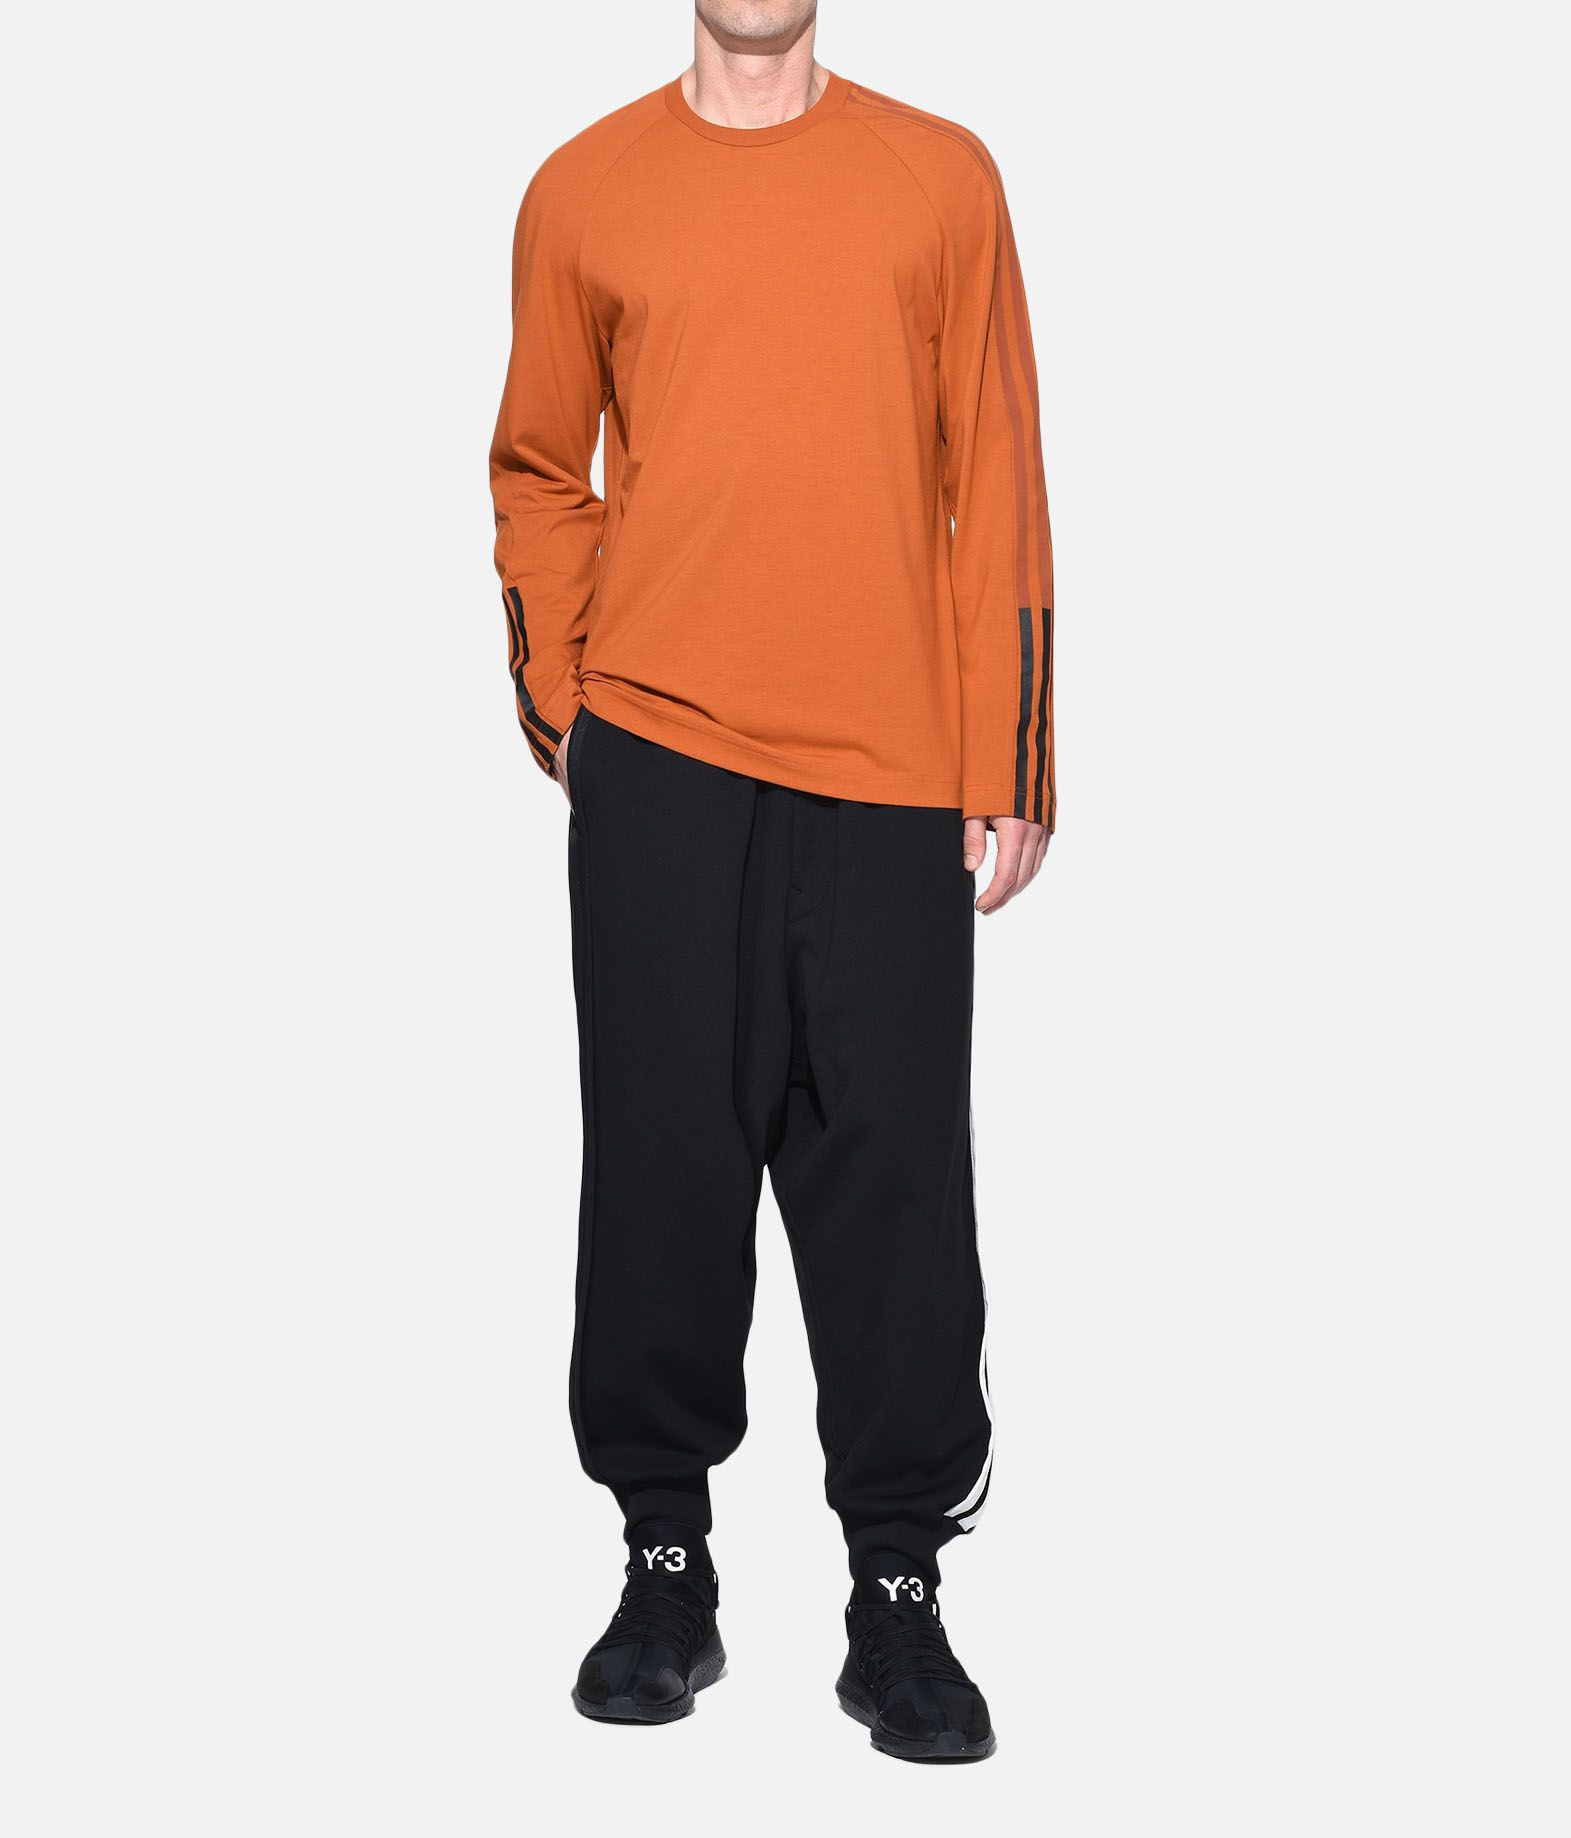 Y-3 Y-3 3-Stripes Tee Long sleeve t-shirt Man a